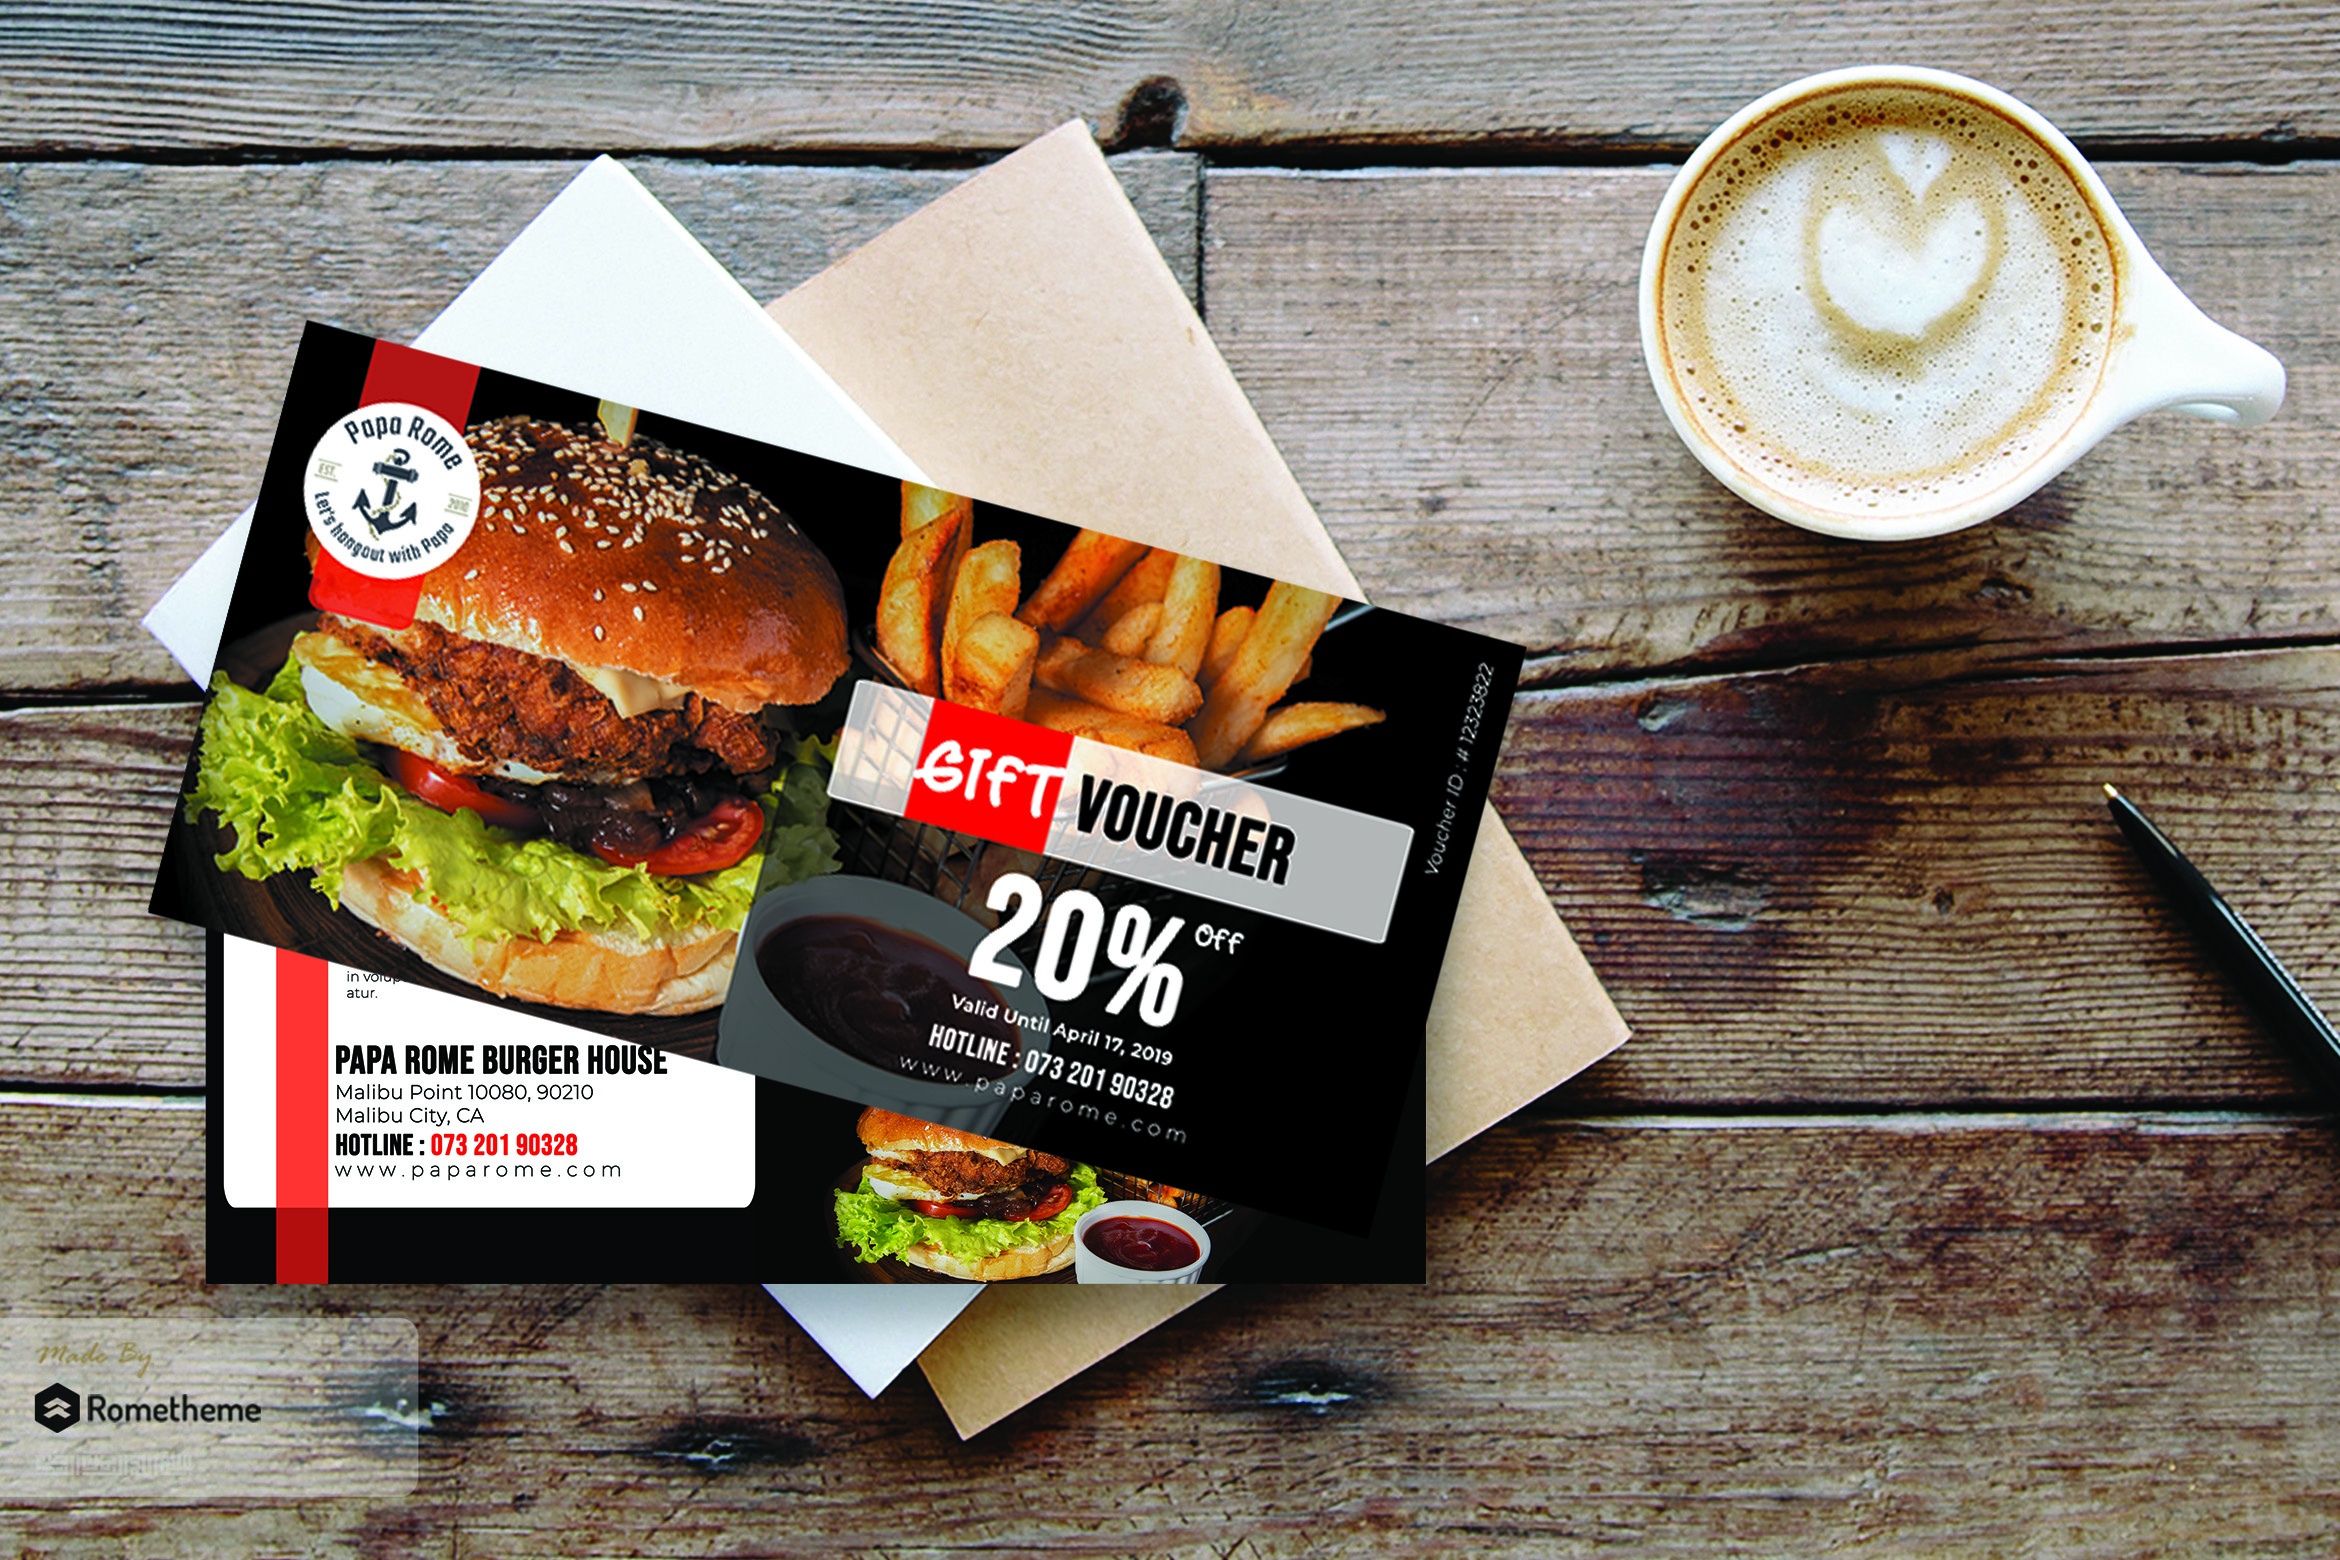 Food Gift Voucher Card vol. 01 example image 1